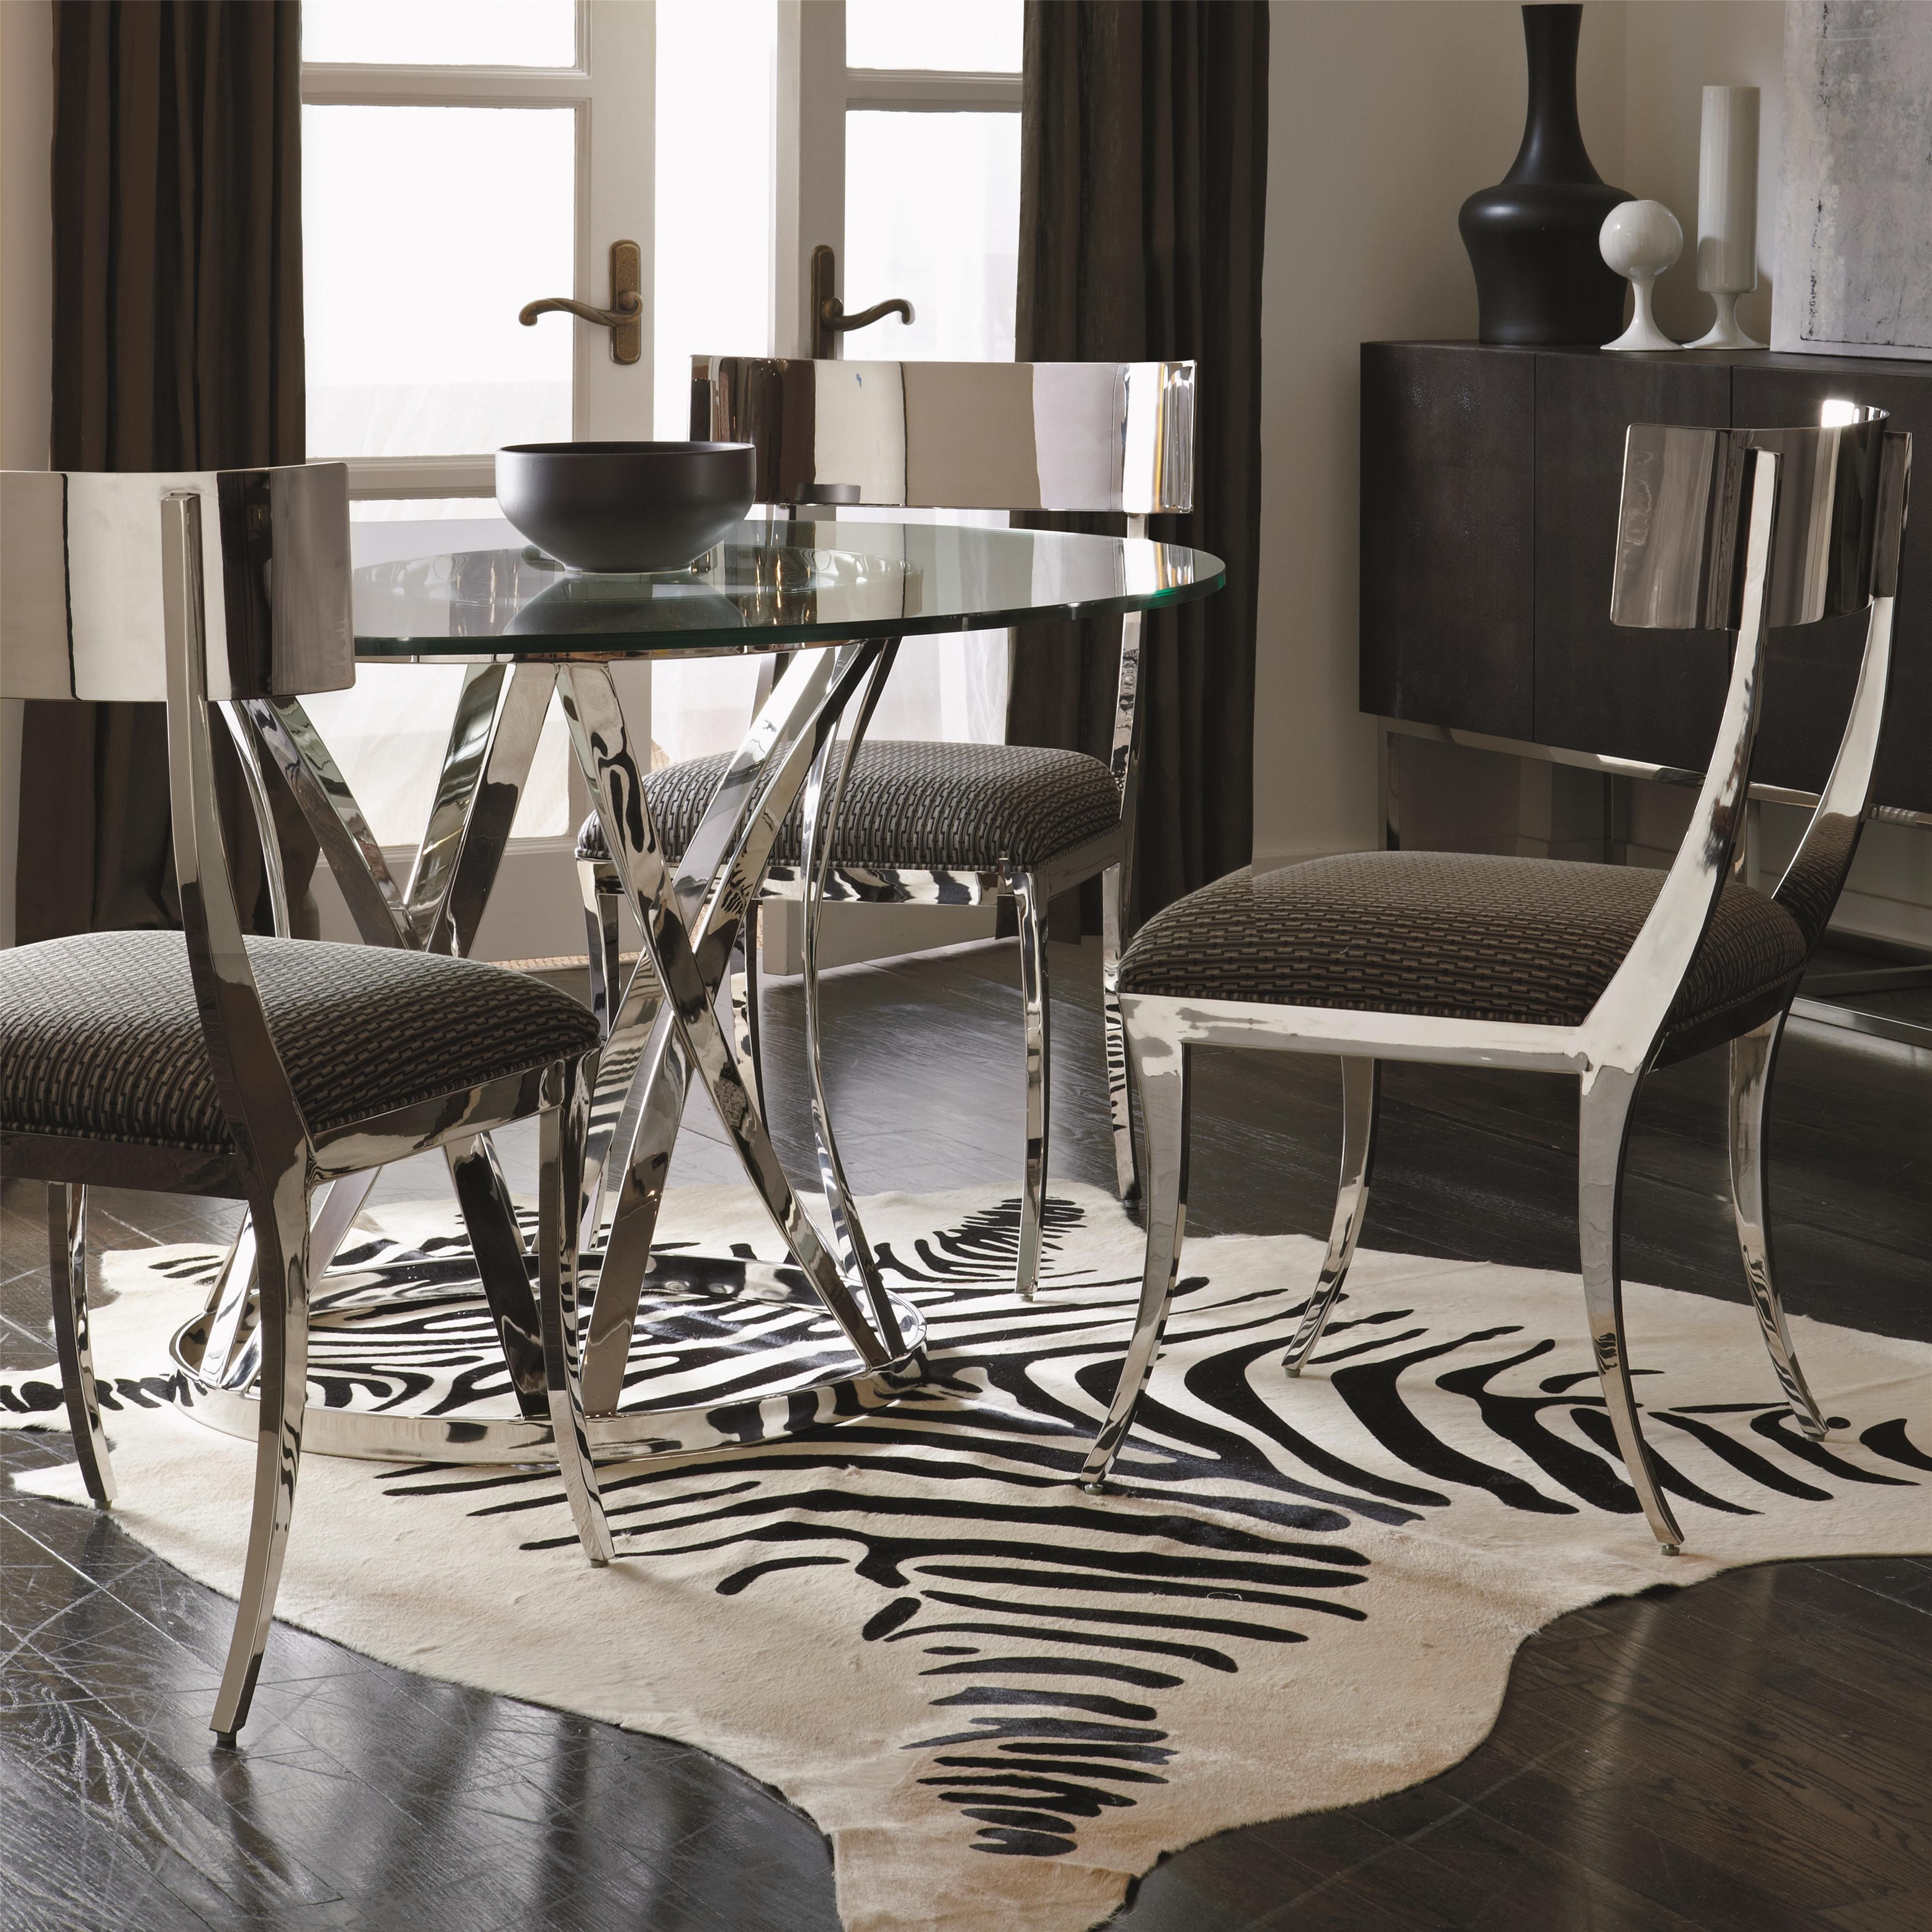 Sleek Modern Dining Table And Chair Set With Round Glass Table Top